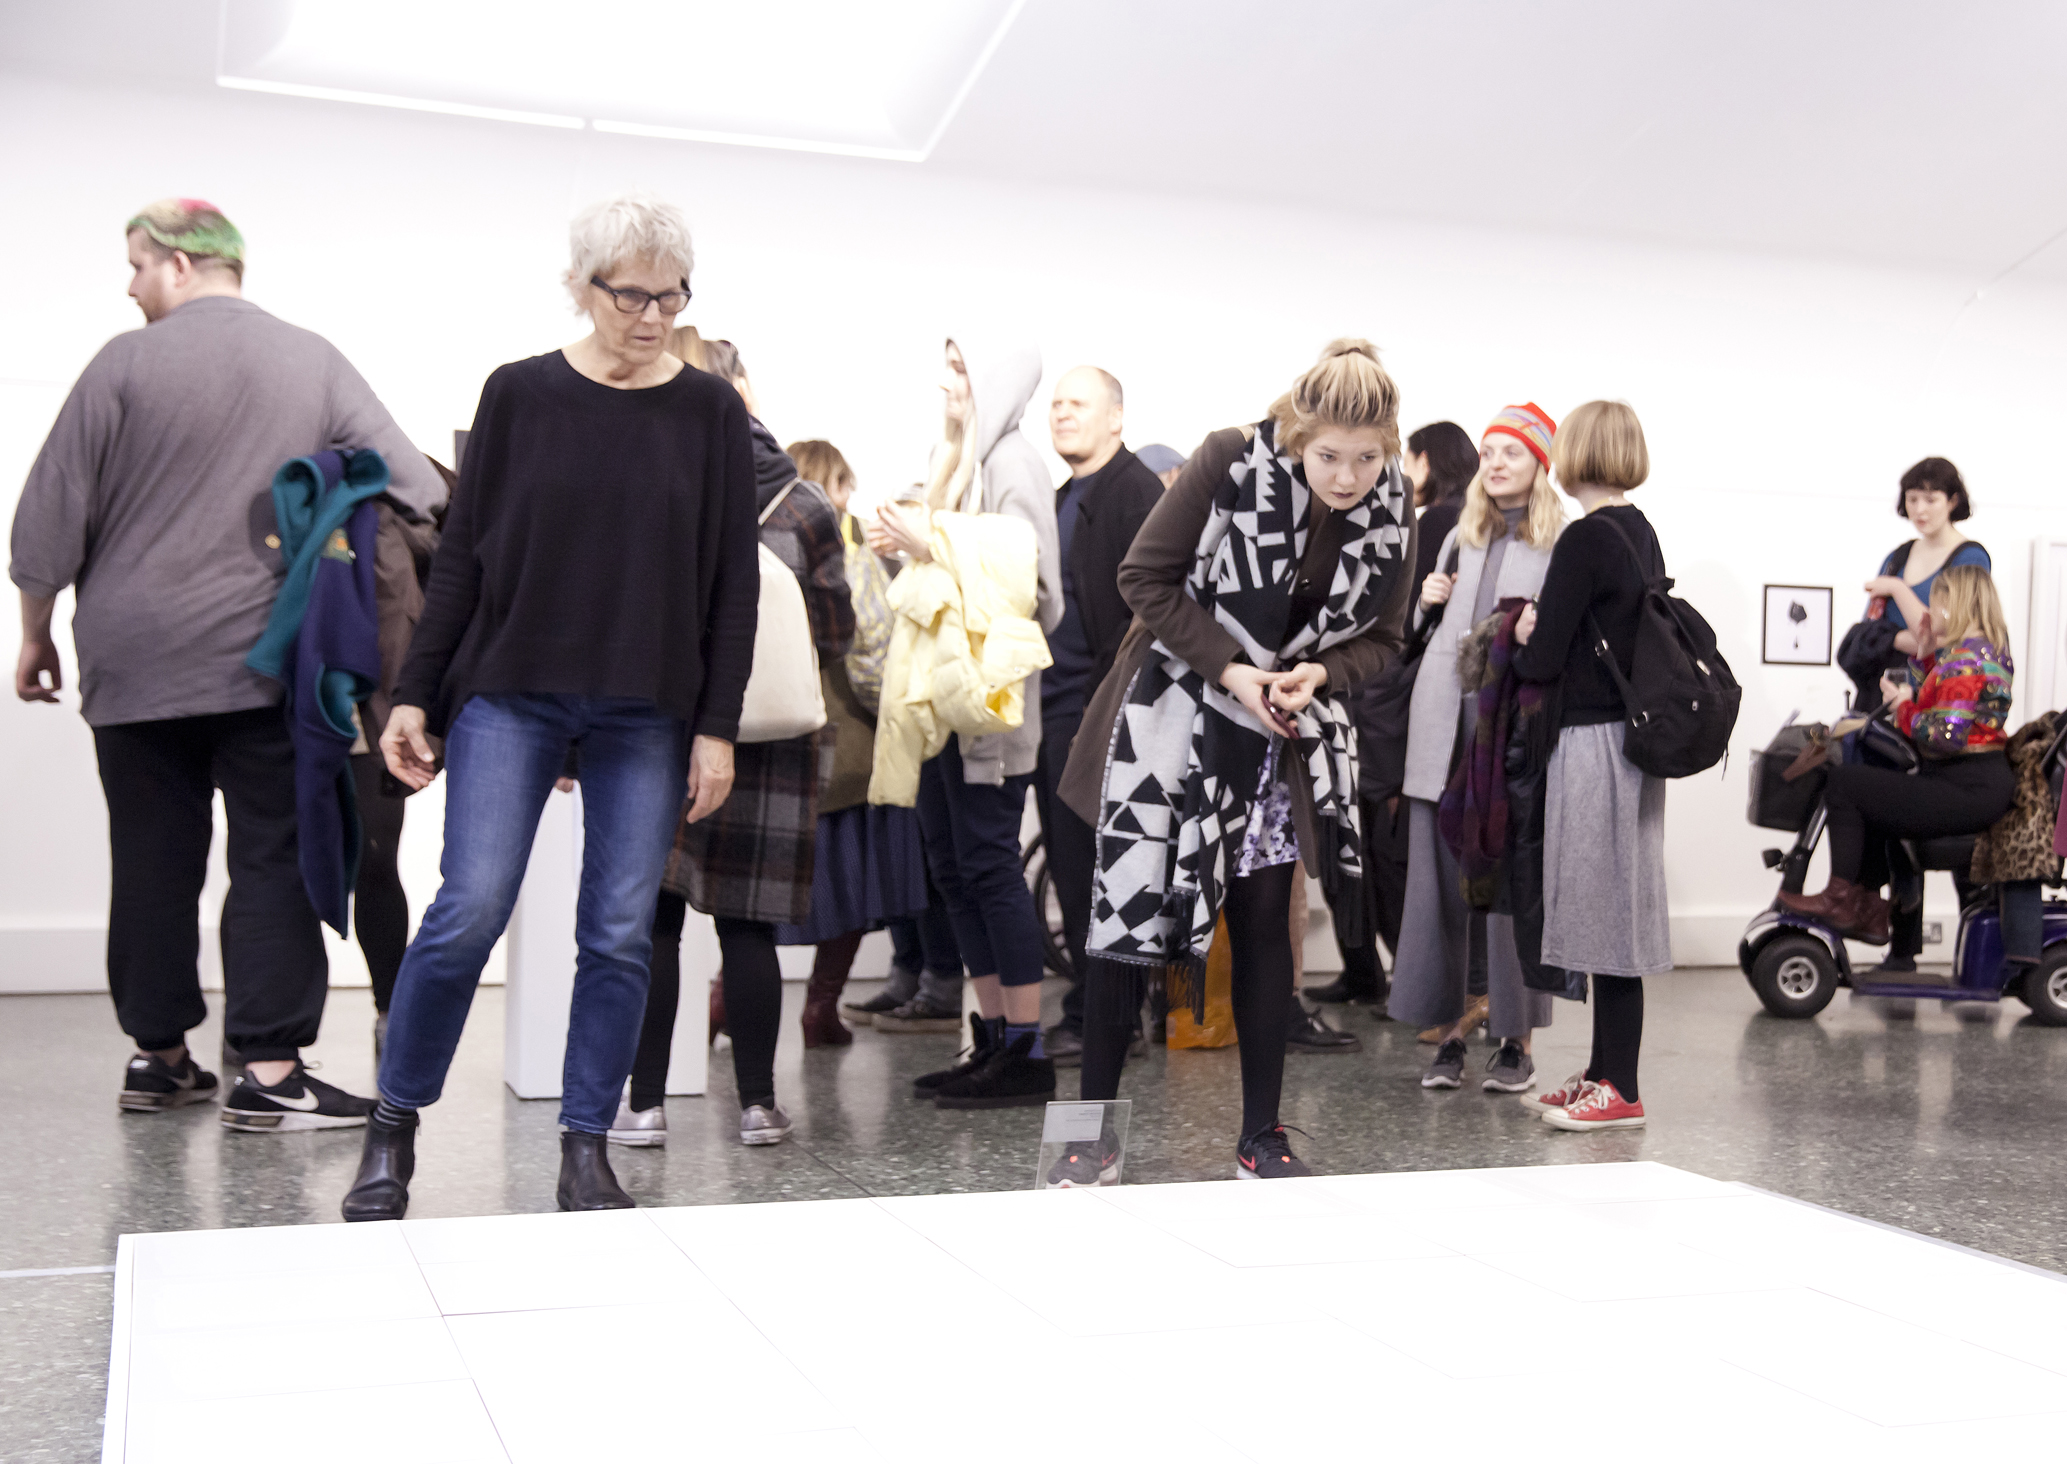 Members of the public looking at some of the artwork in the white gallery space